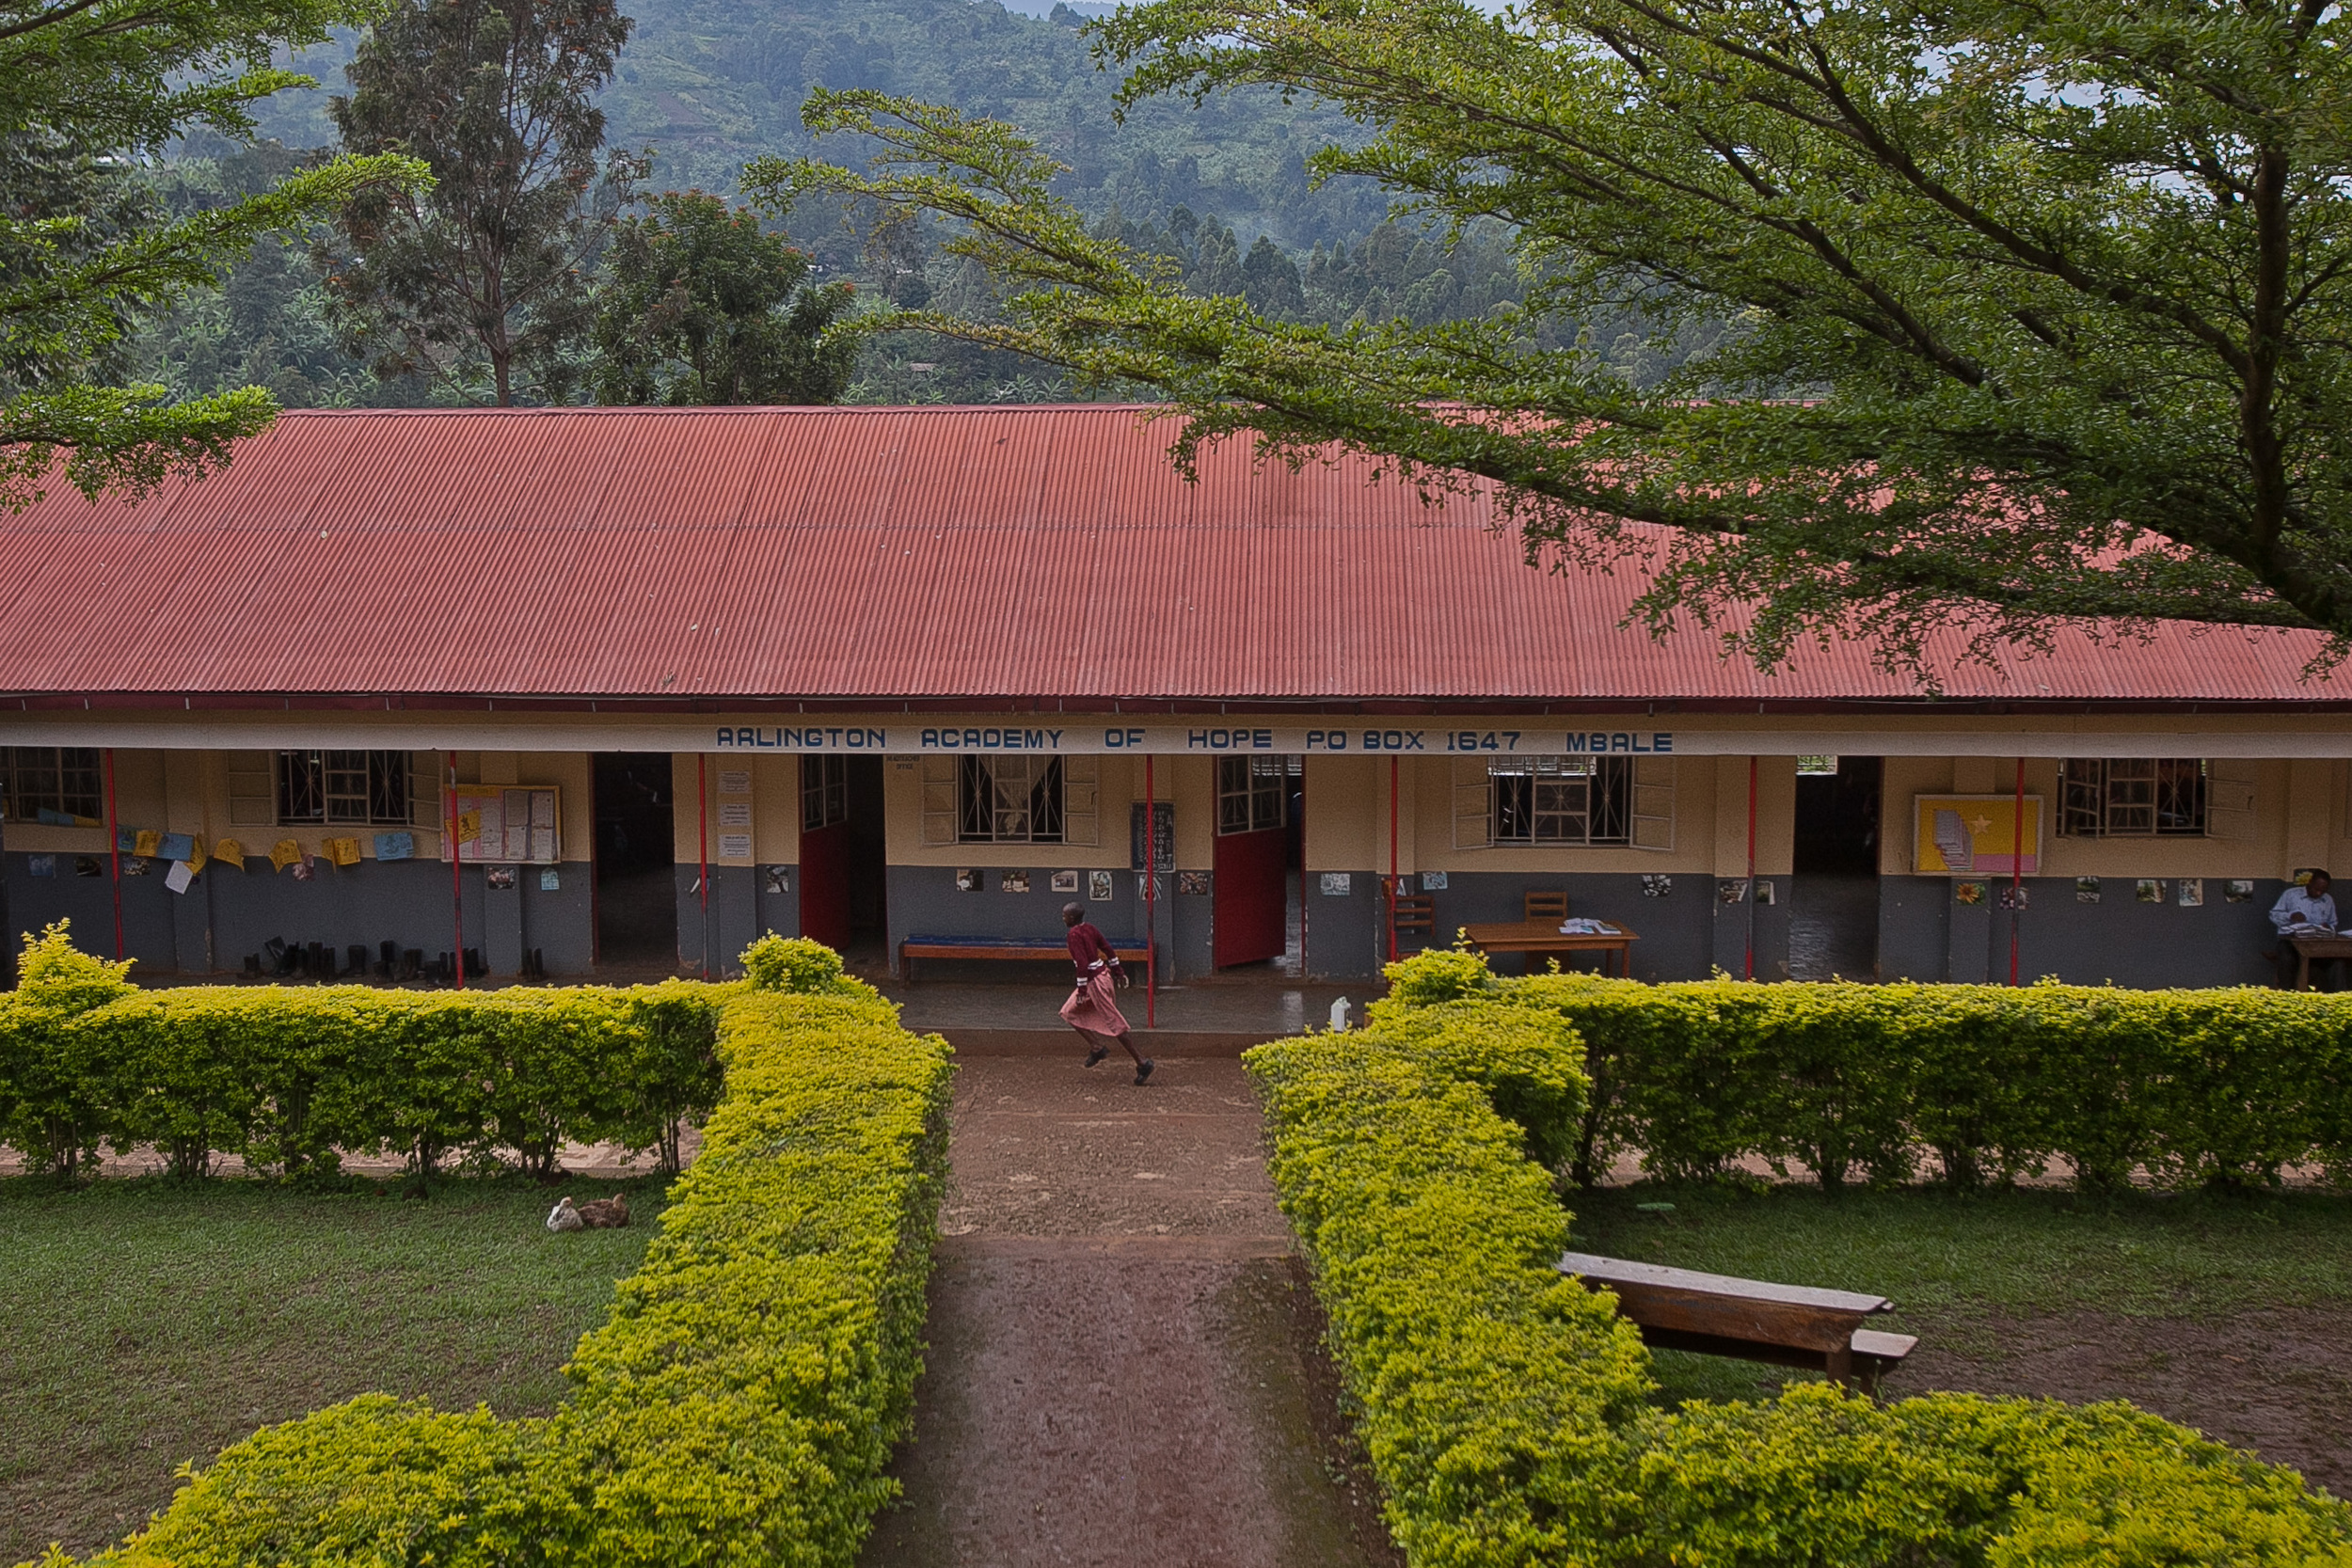 Arlington Academy of Hope in Bududa district, Uganda. (Photo by Kate Lord)